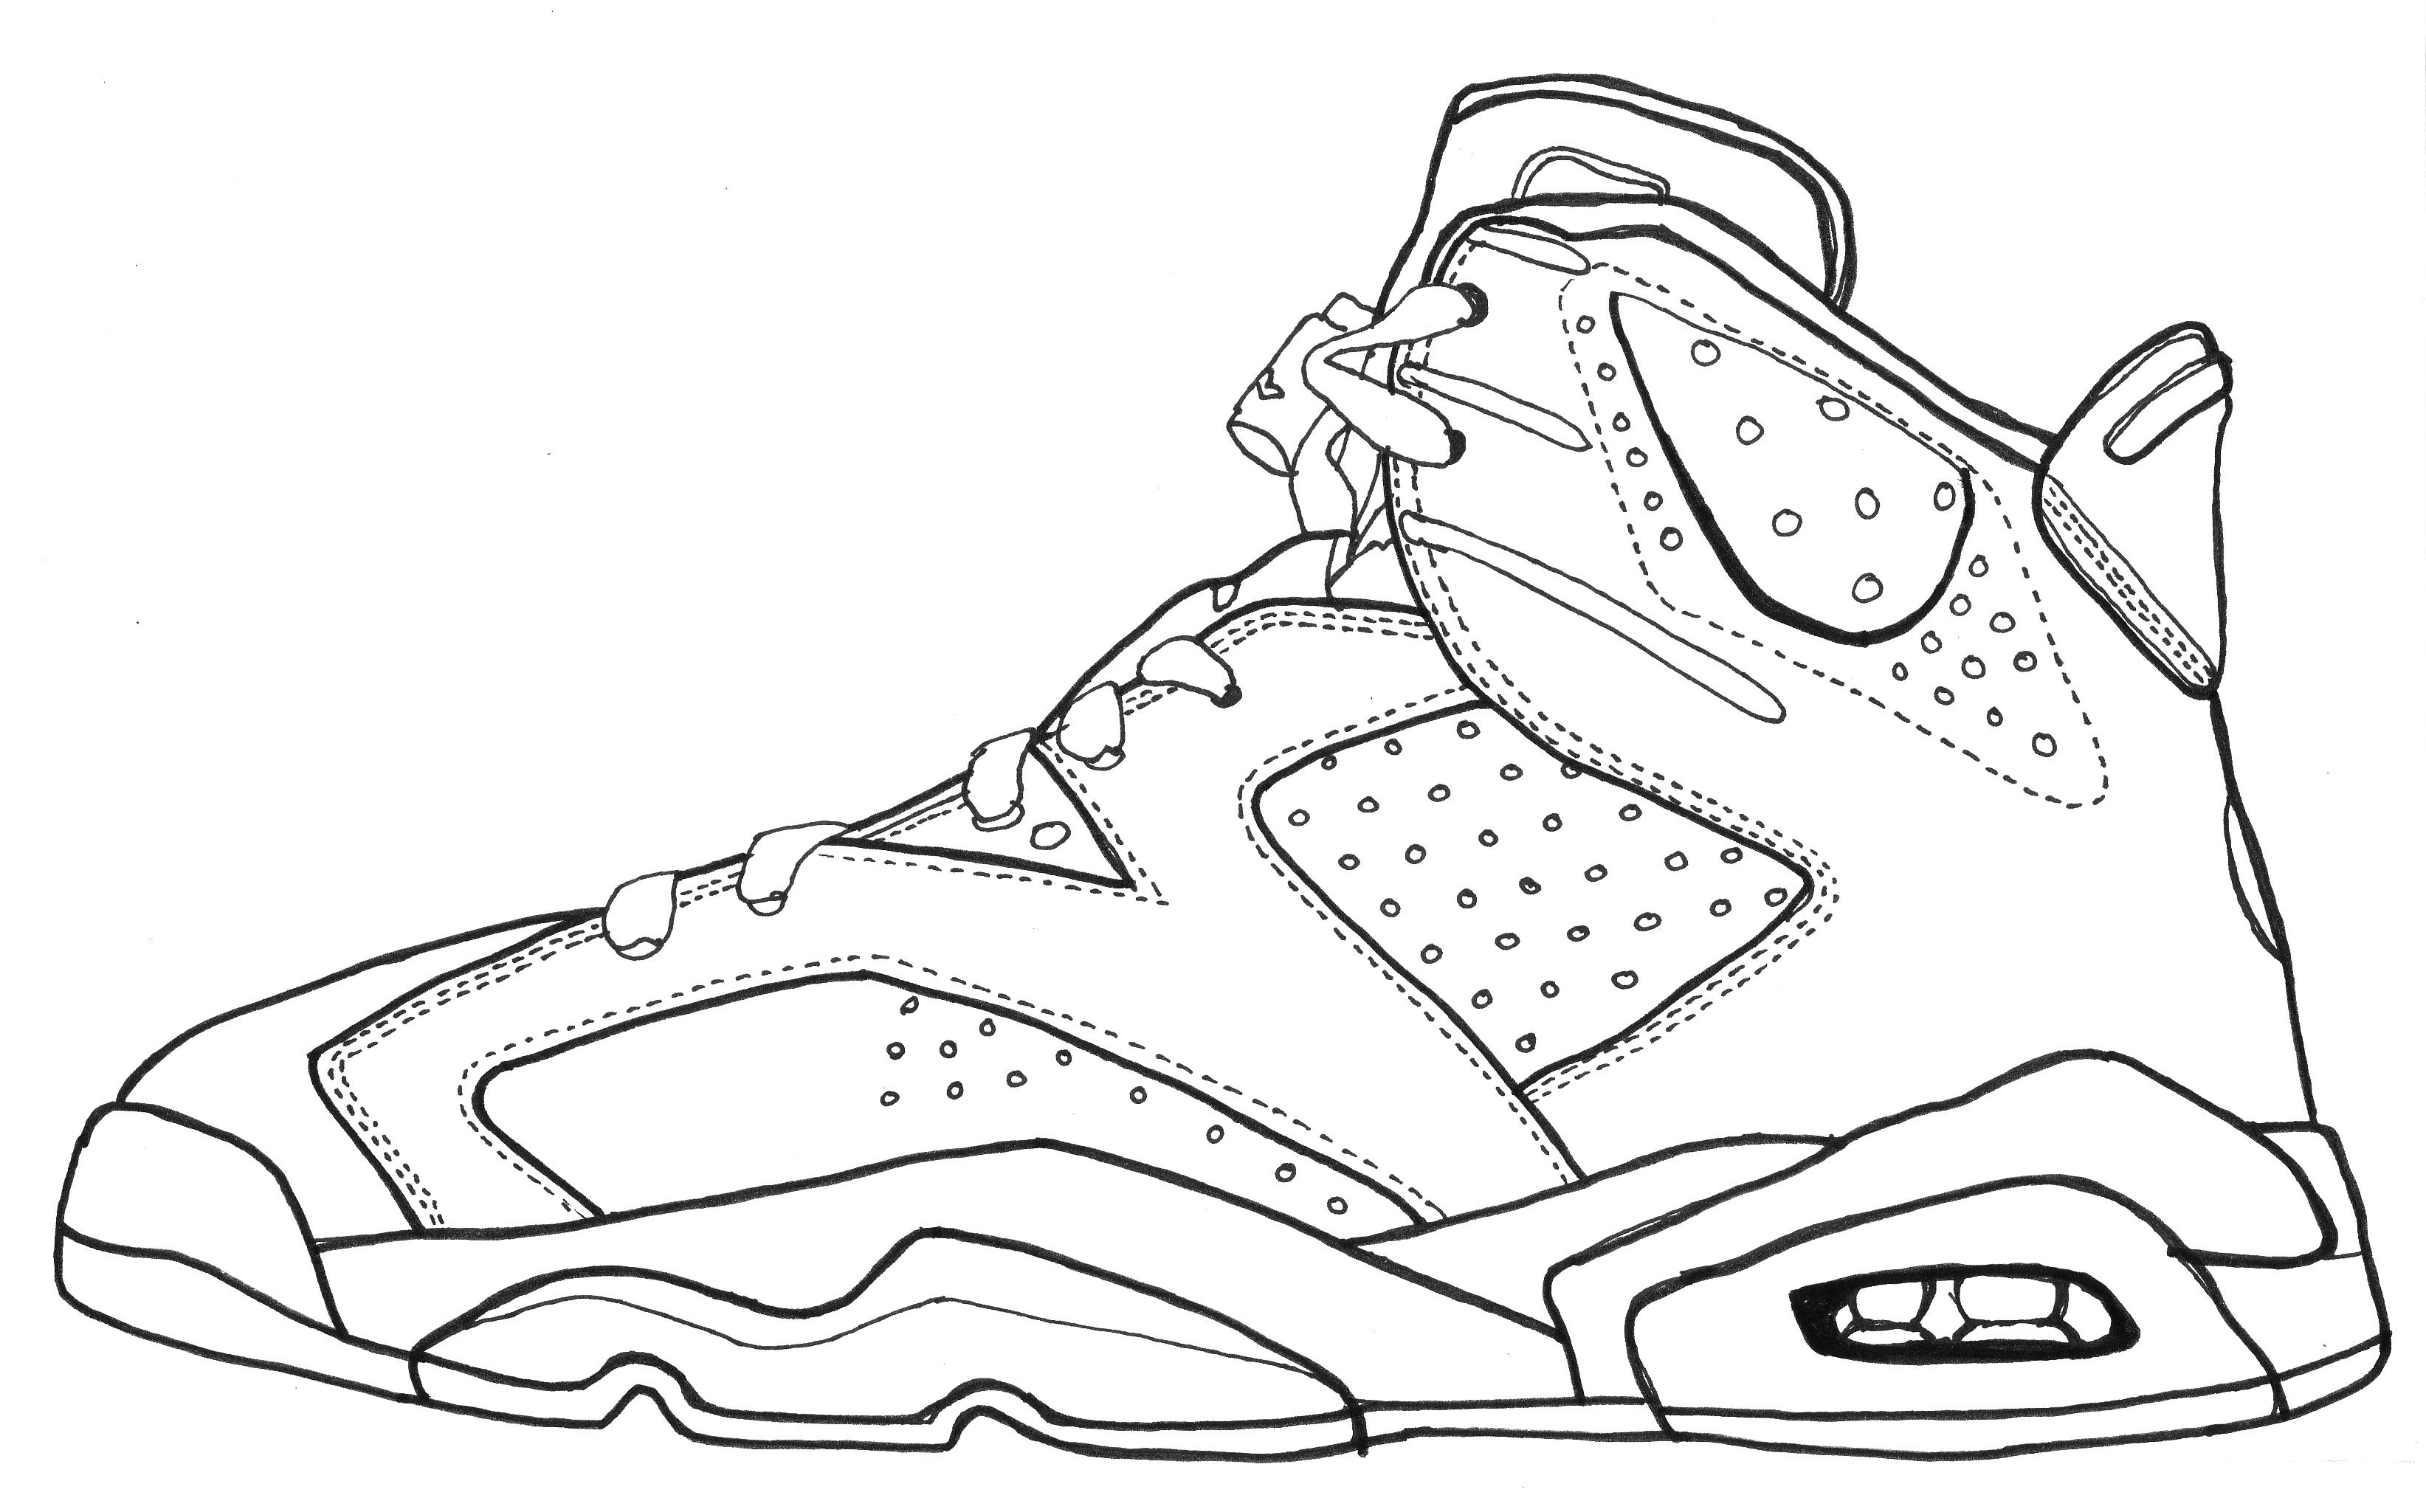 Jordan VI sketch black and white line drawing in 2019